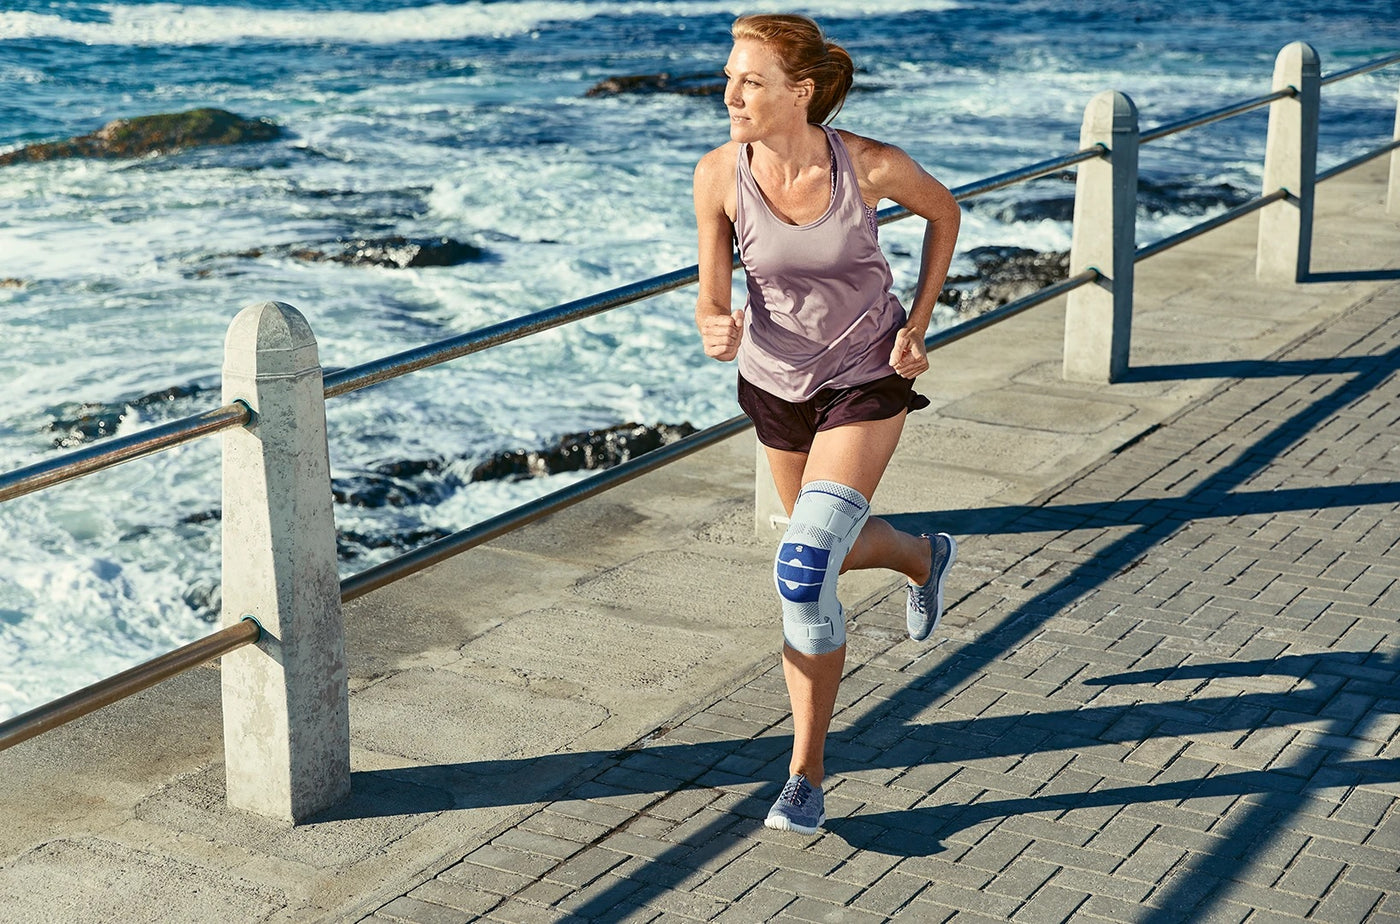 Woman running/jogging on seashore track, and wearing a knee brace made by Bauerfeind.